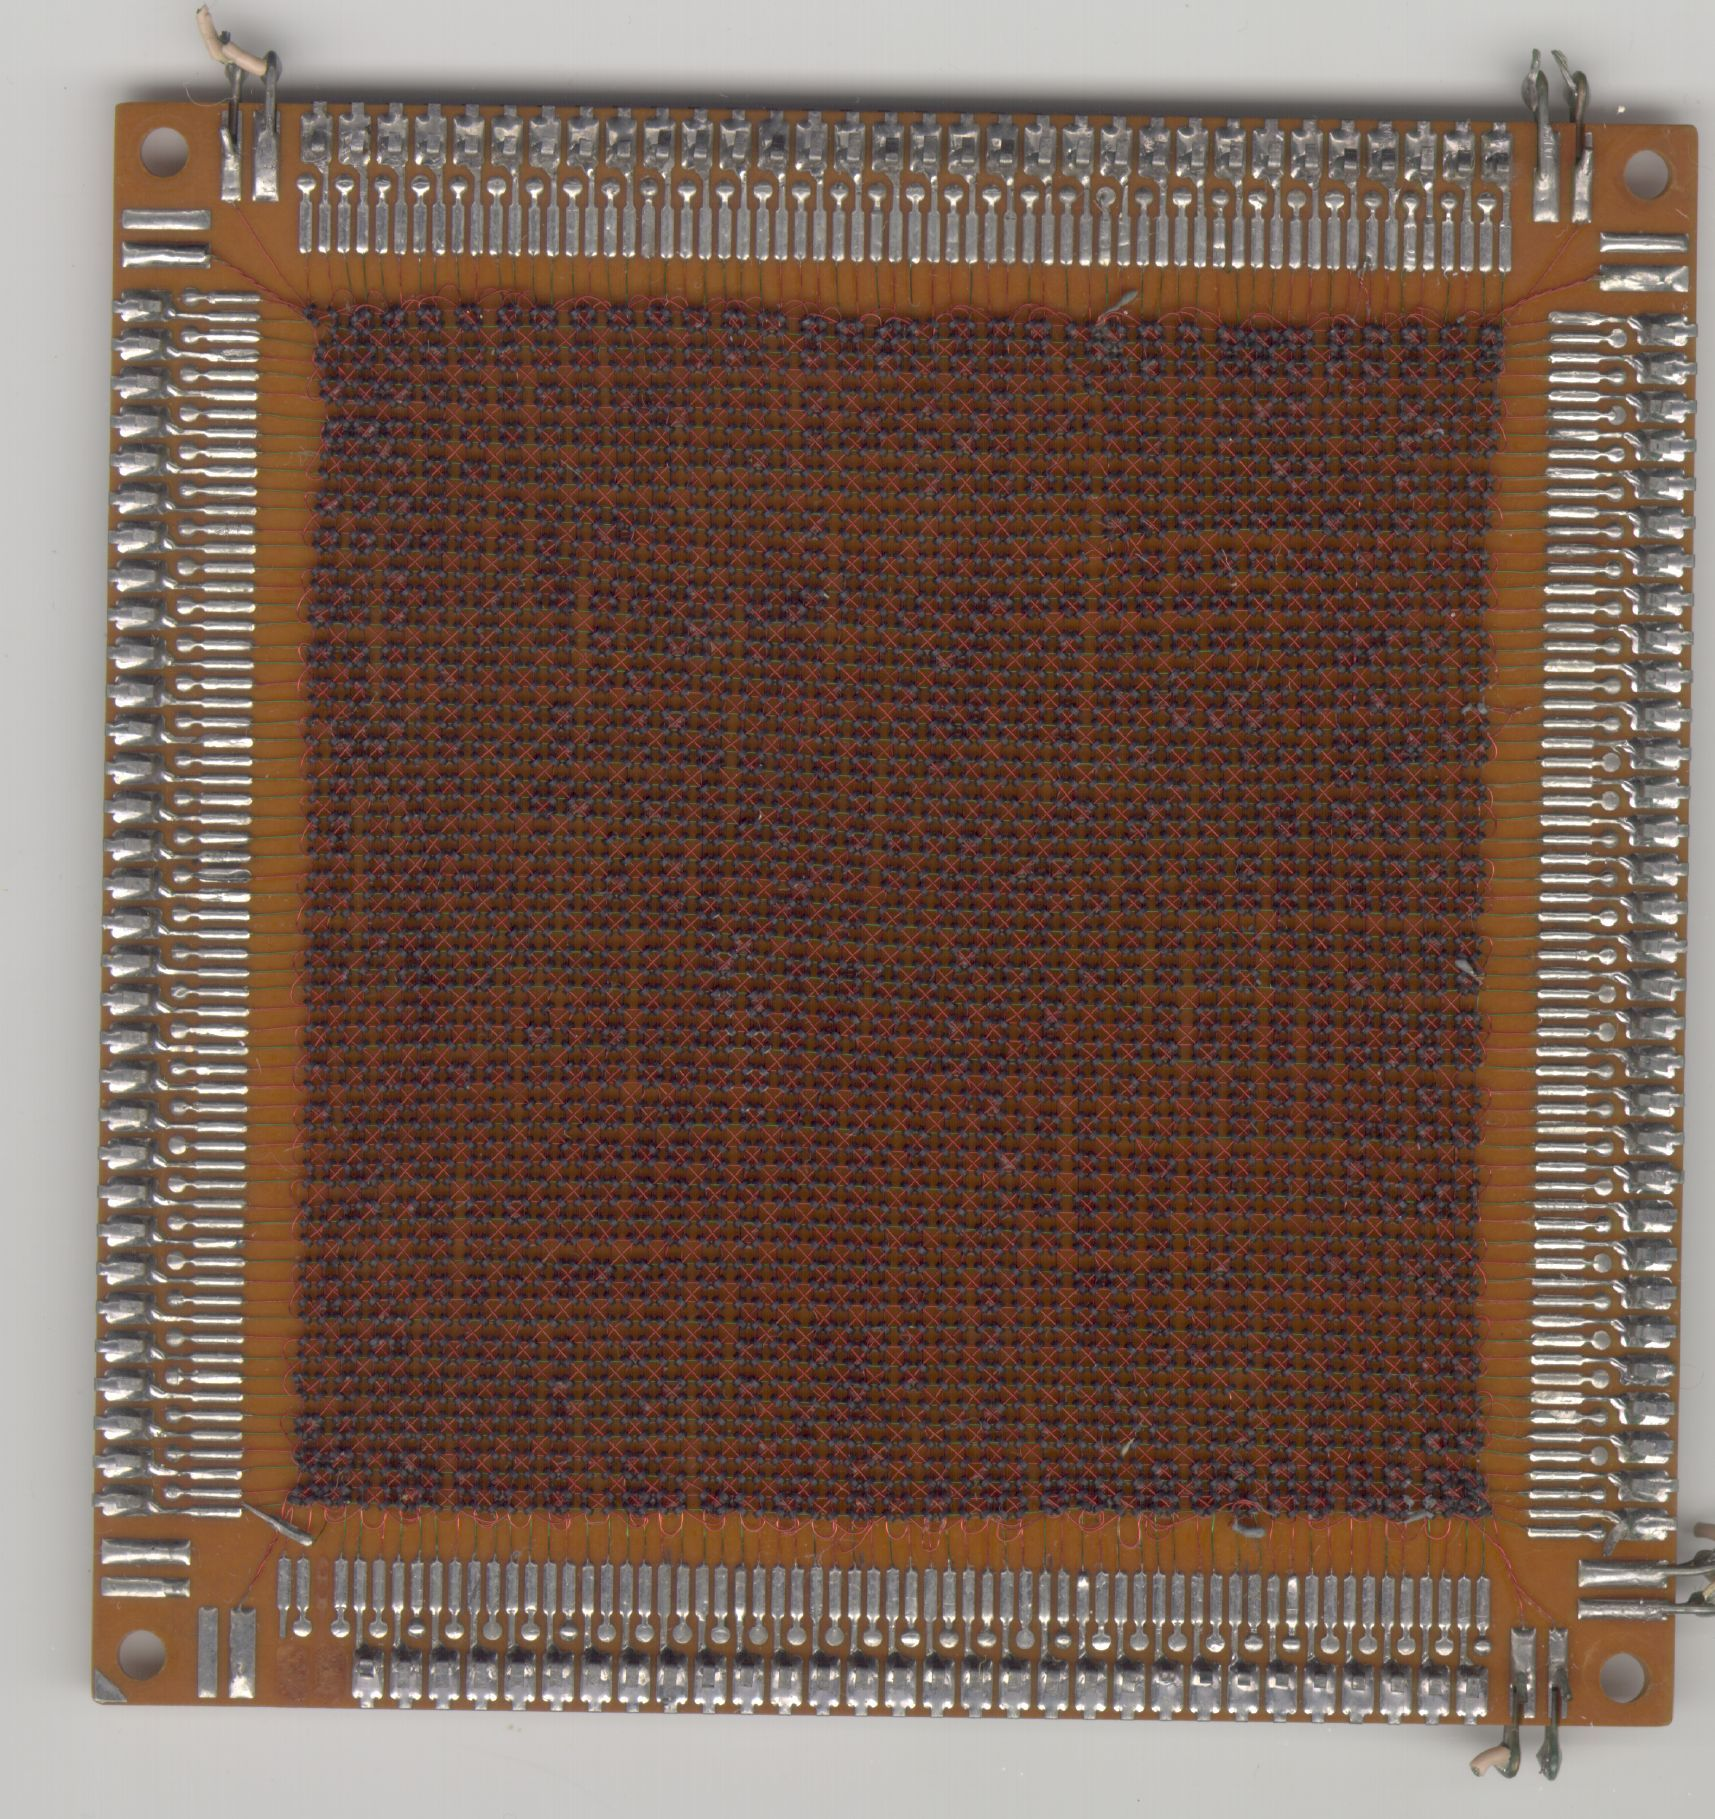 Magnetic Core Memory How It Works Google Search Users Monash Edu